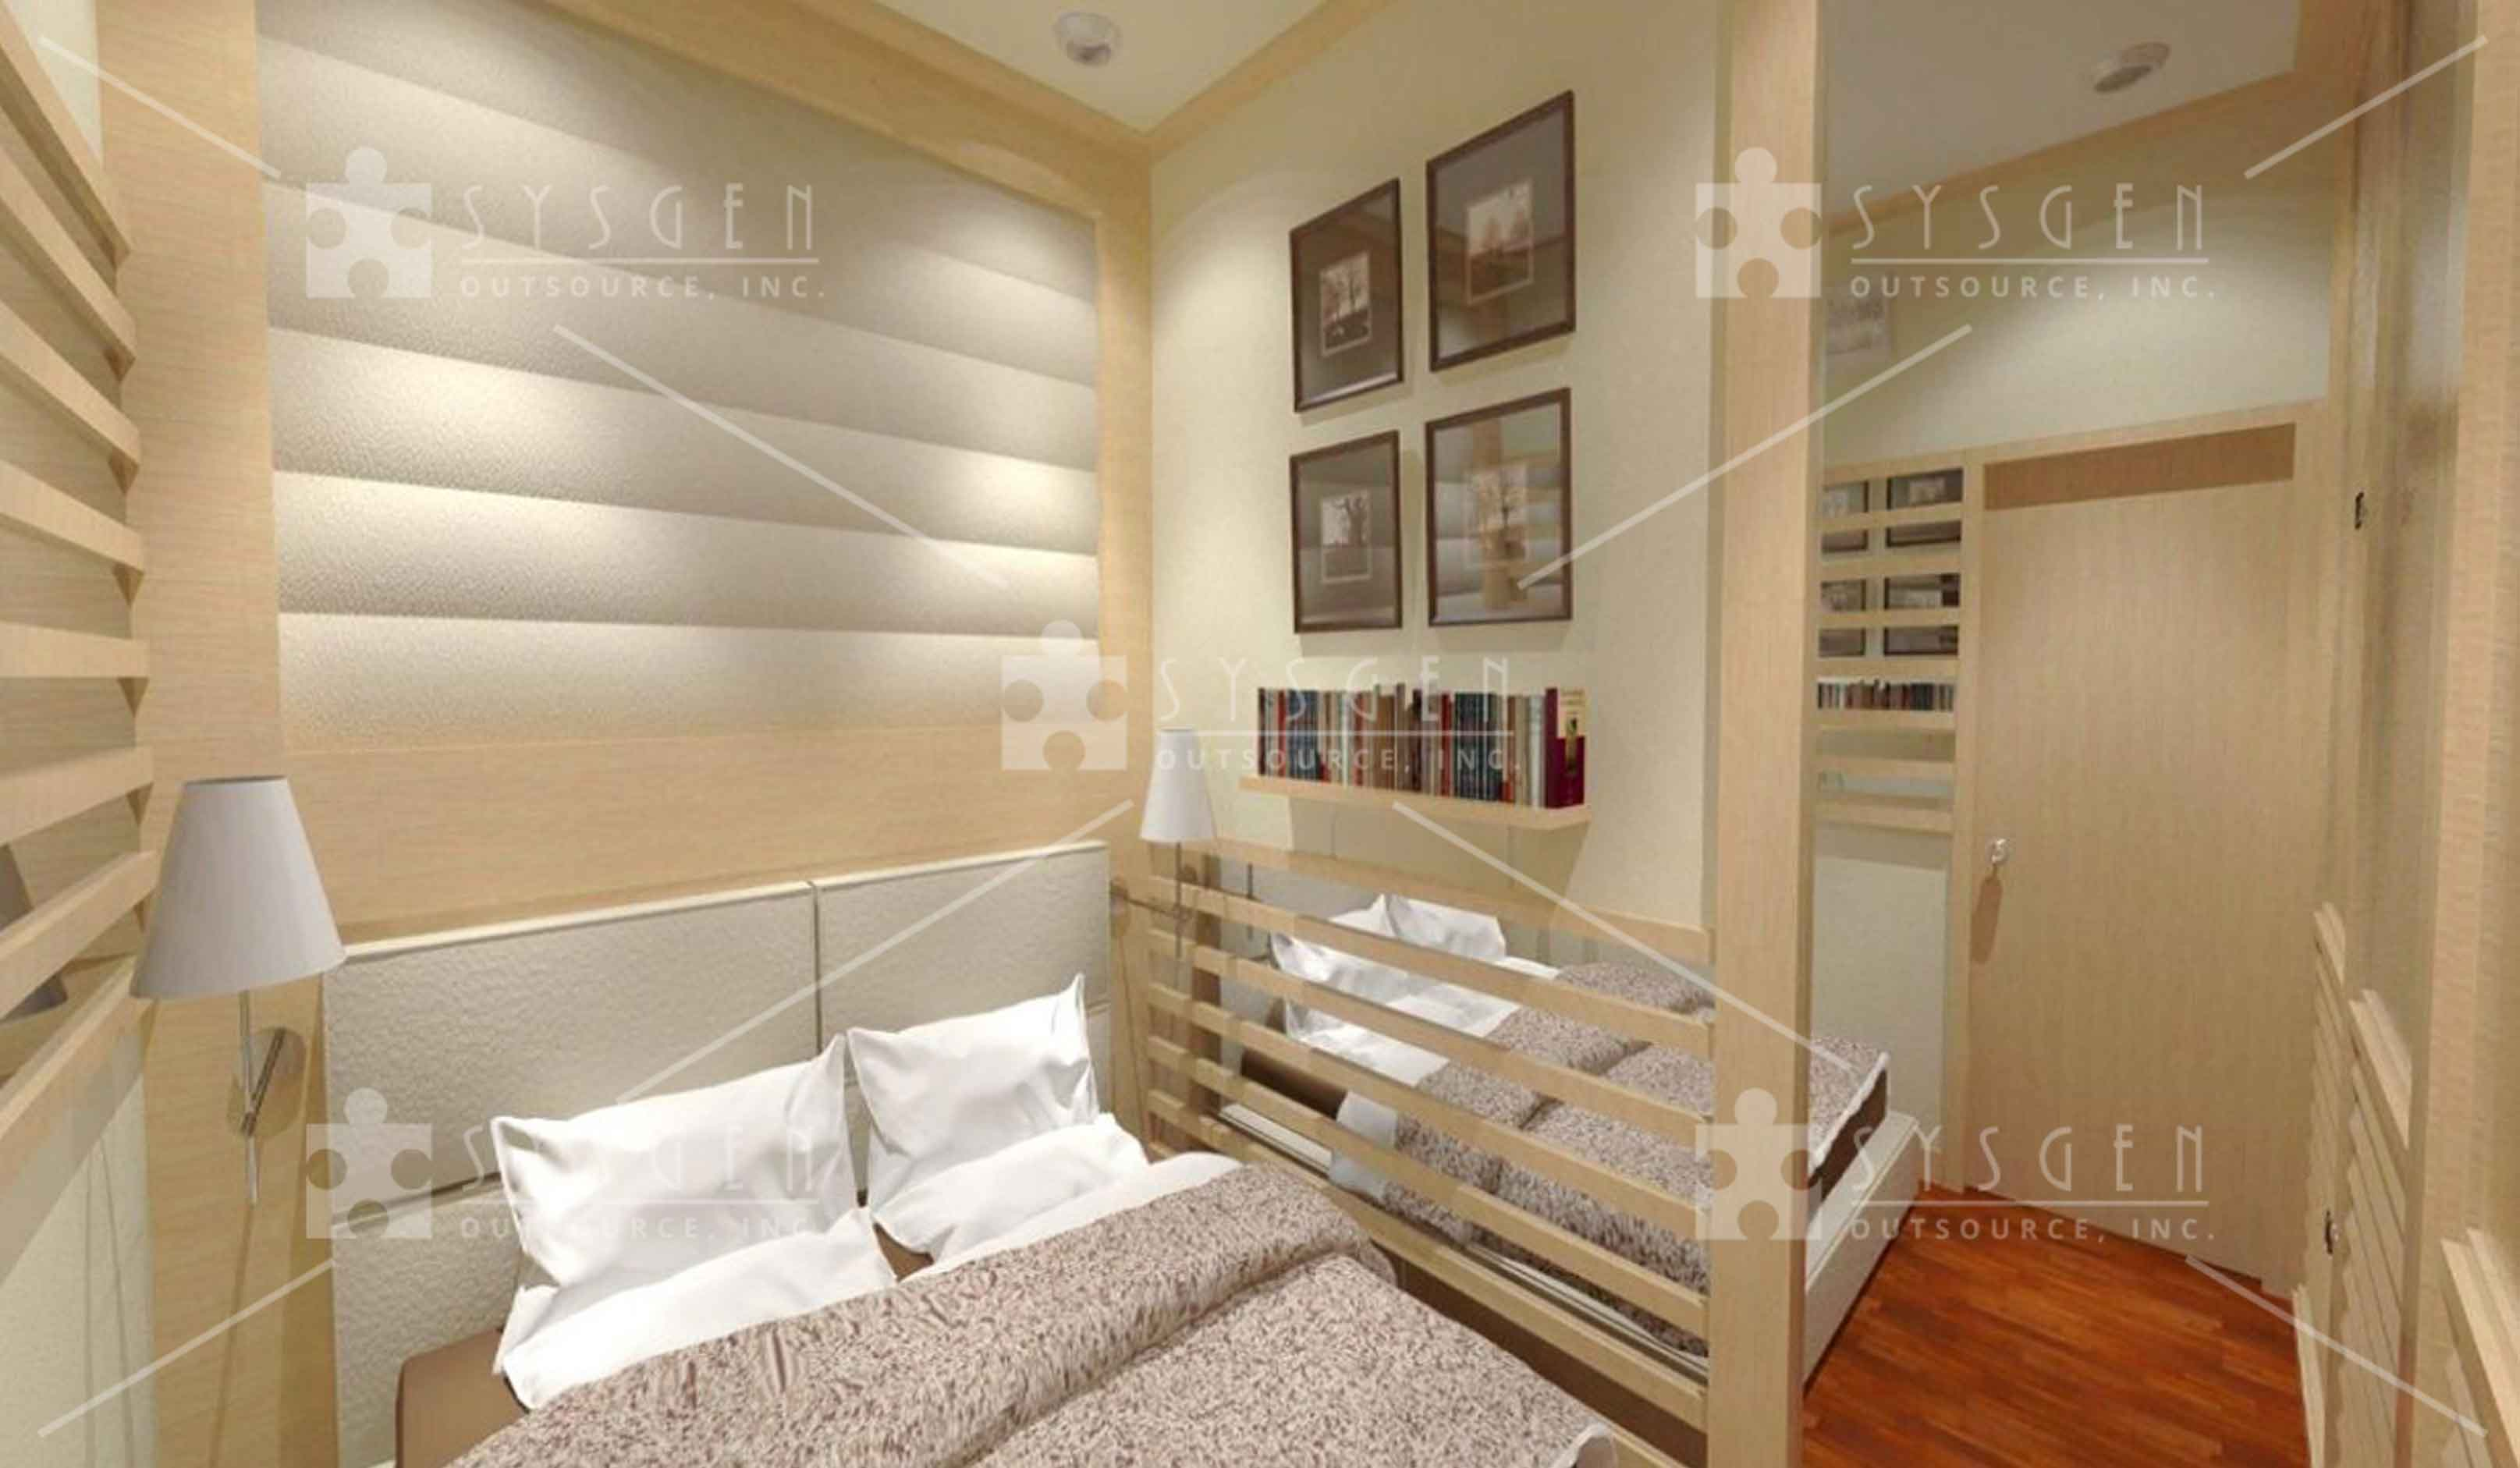 sysgen-outsource-cad-outsourcing-services-3d-presentation-interior-design1